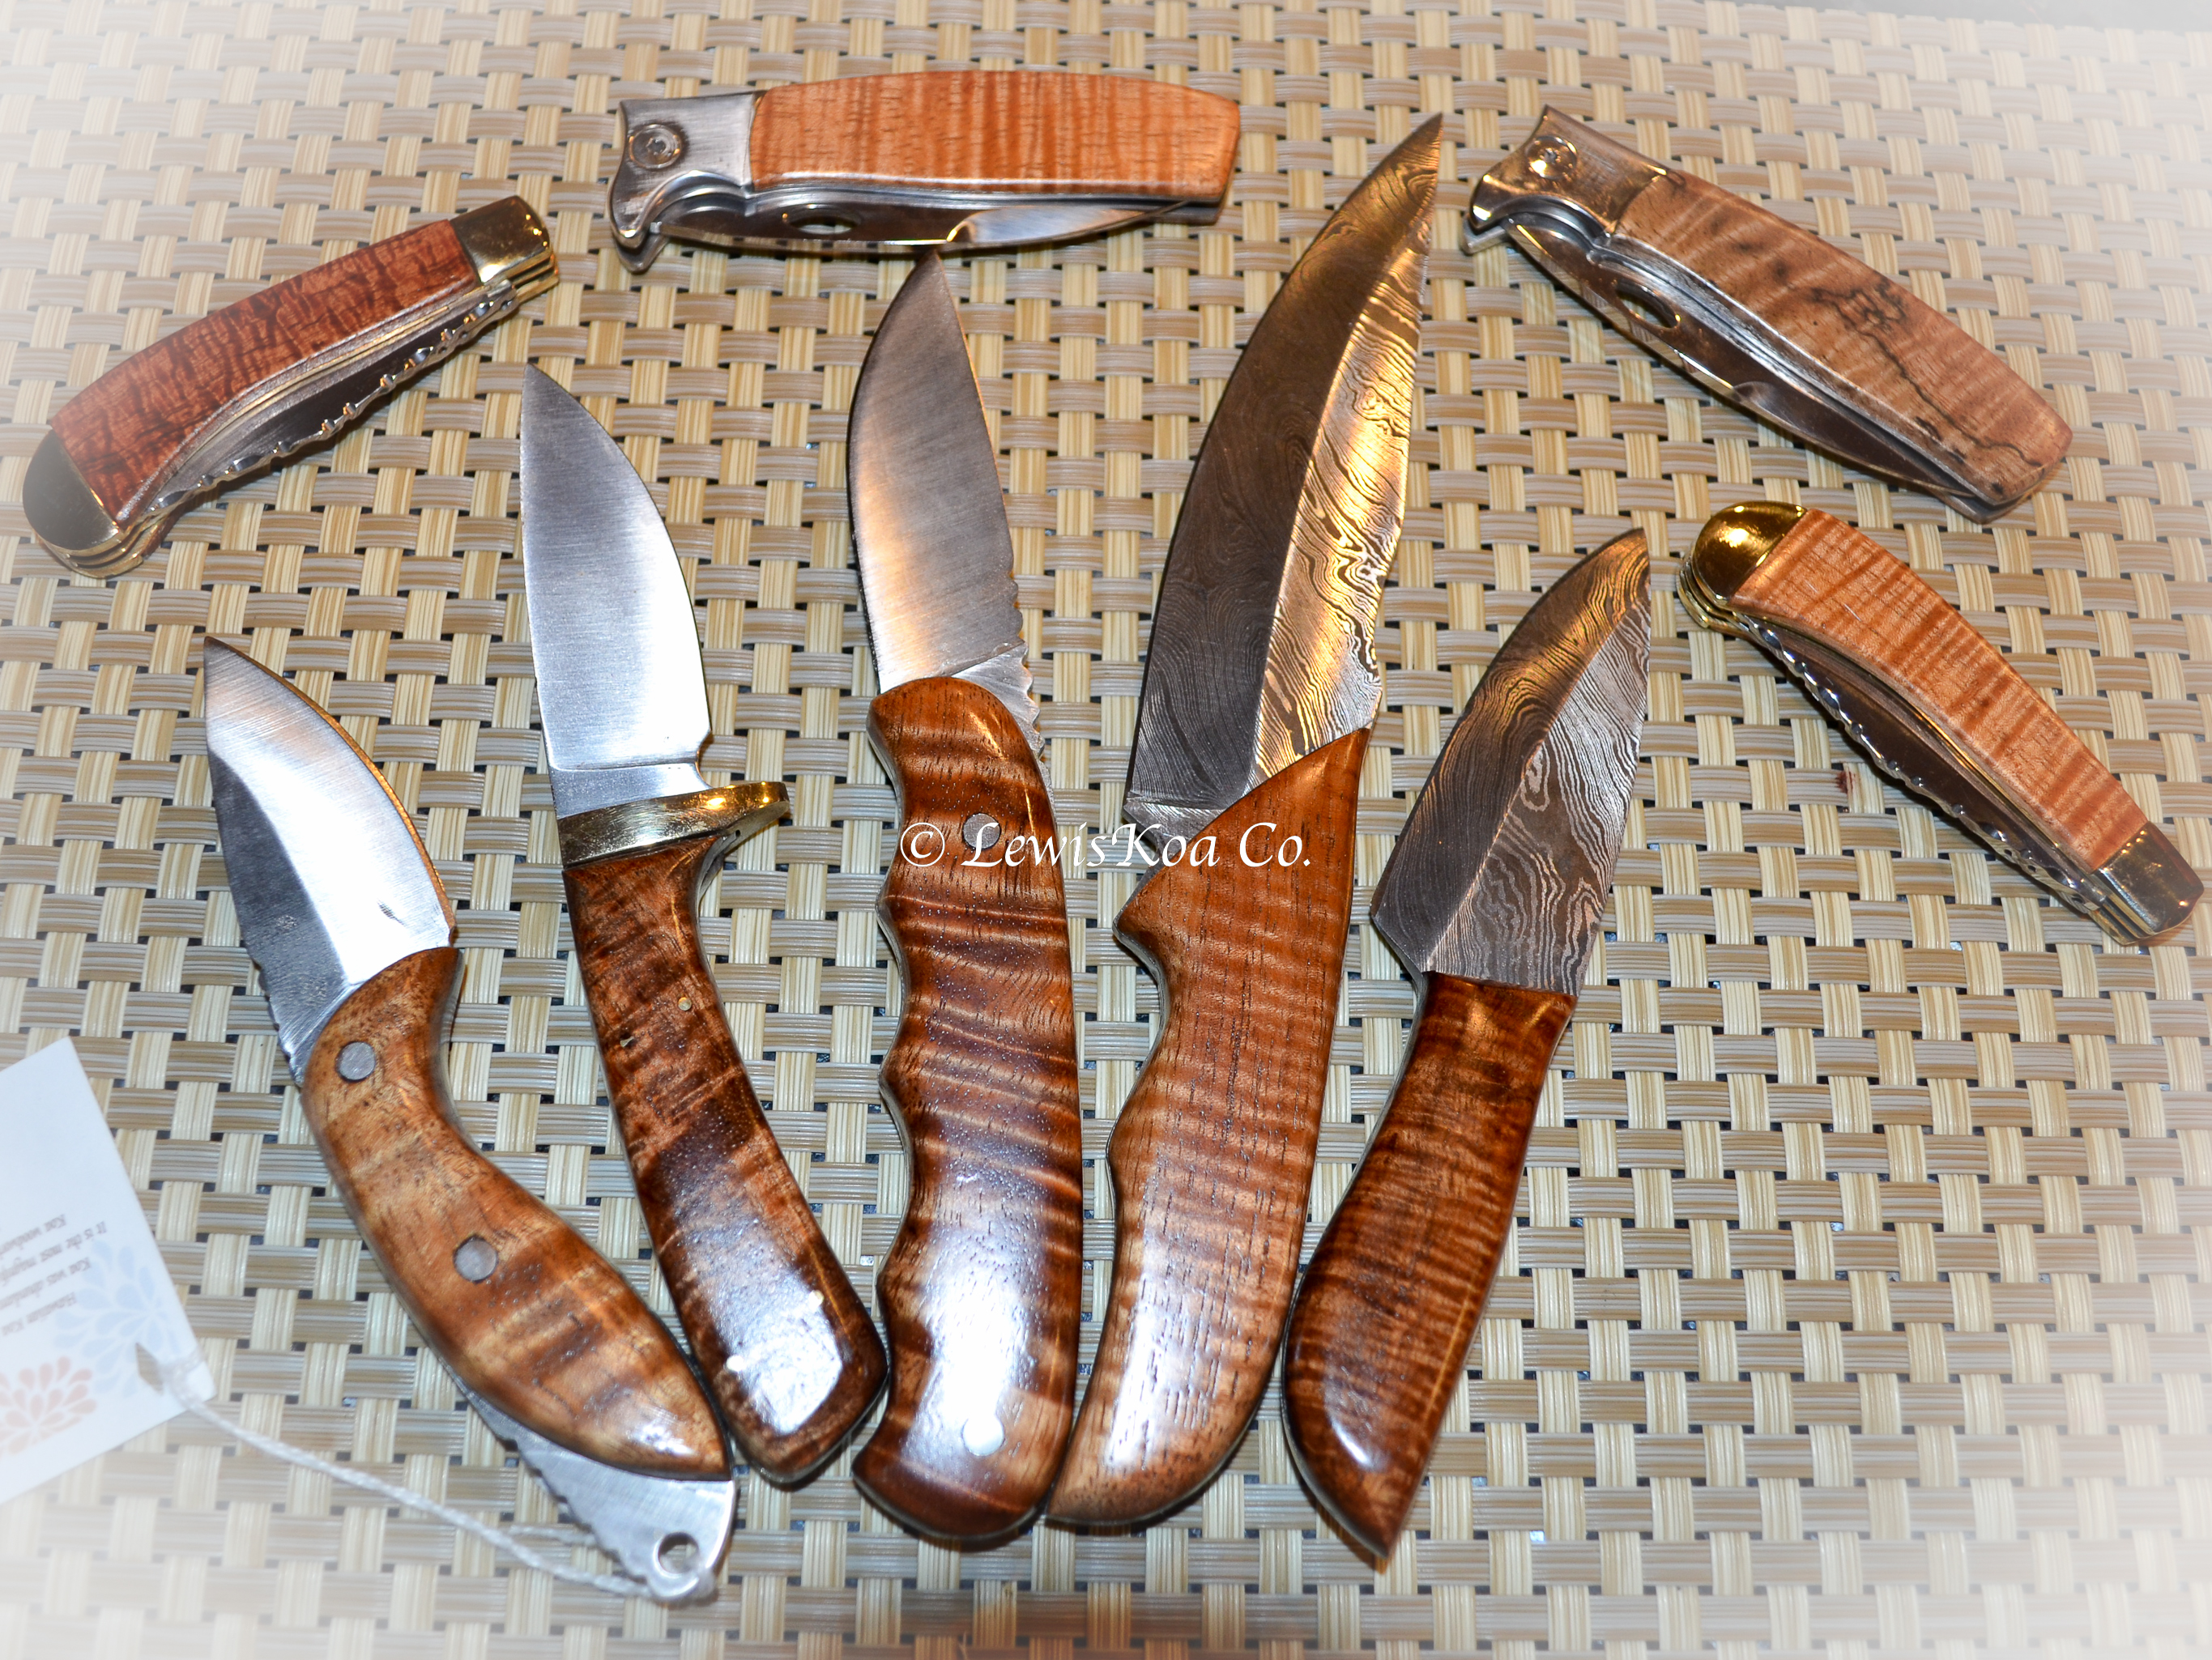 Koa knife collection